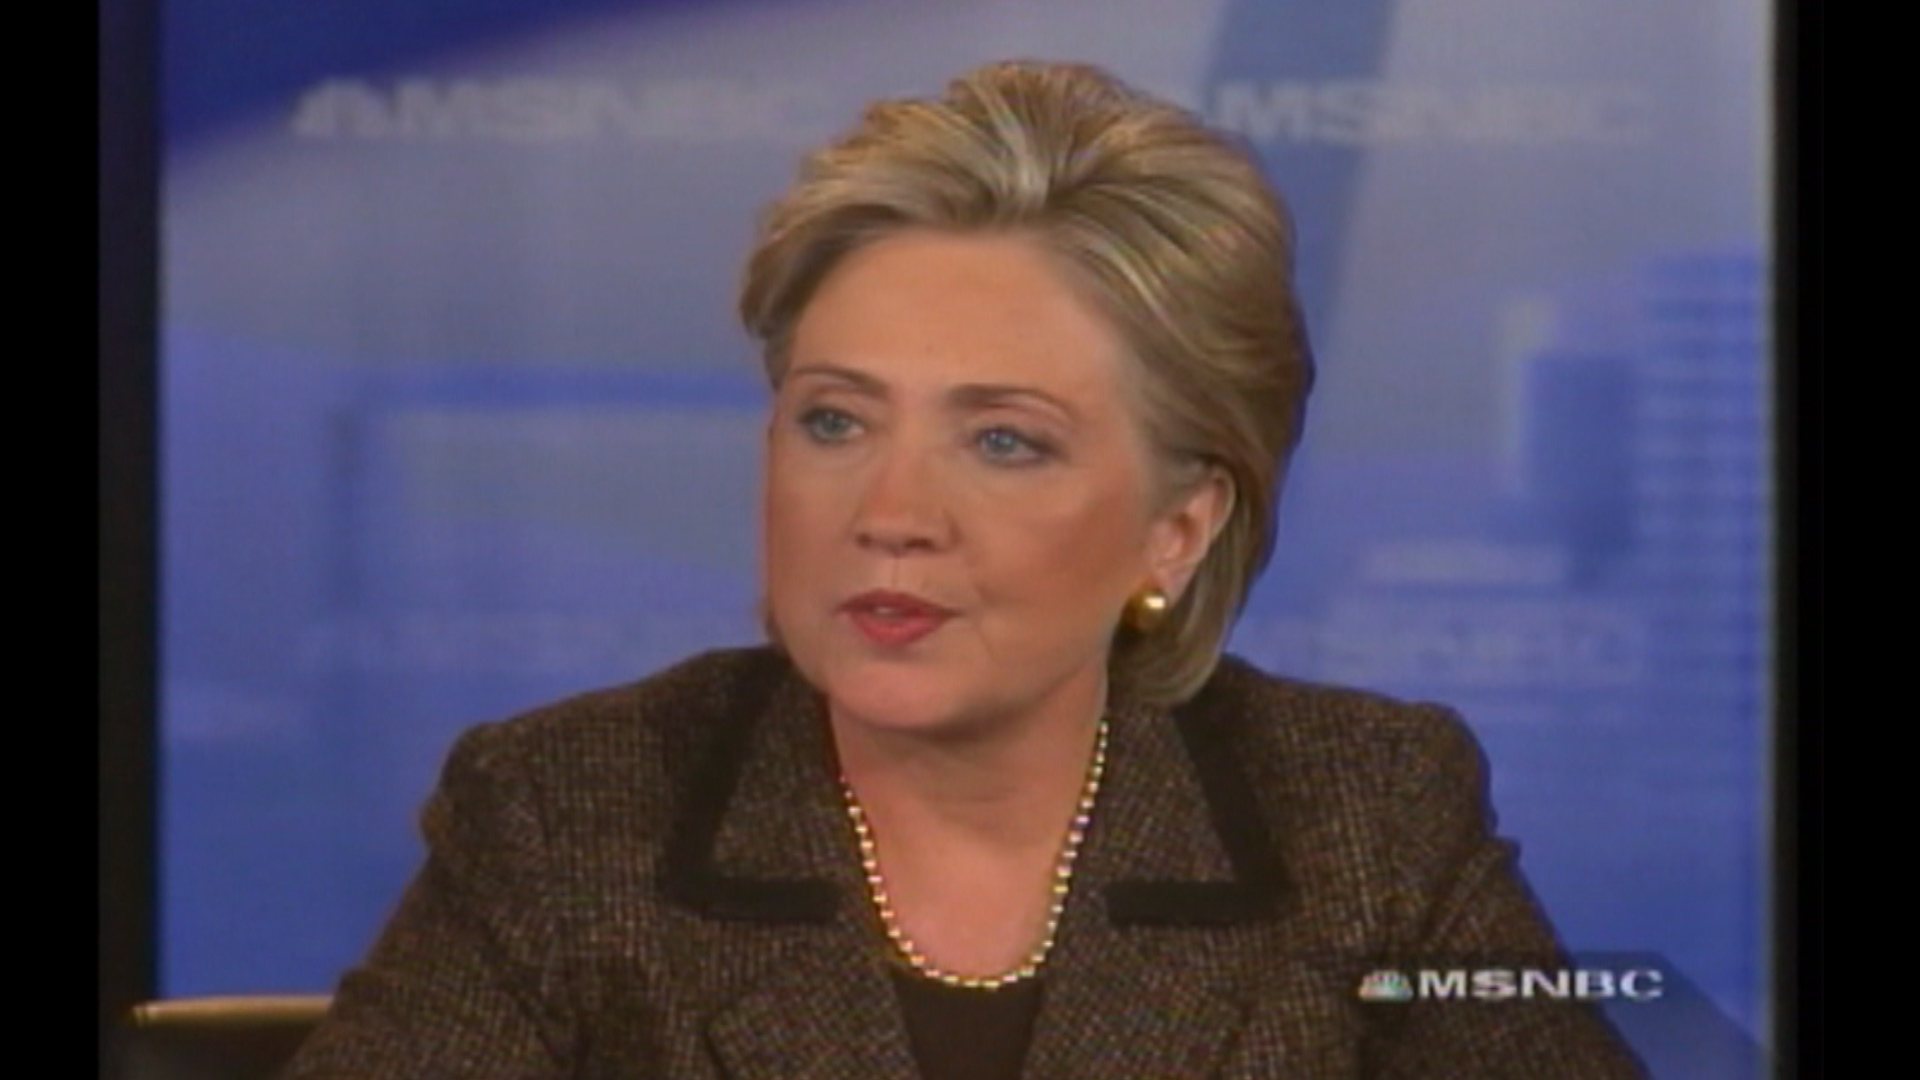 History Repeating Itself? 2016 Feeling Like 2008 For Hillary